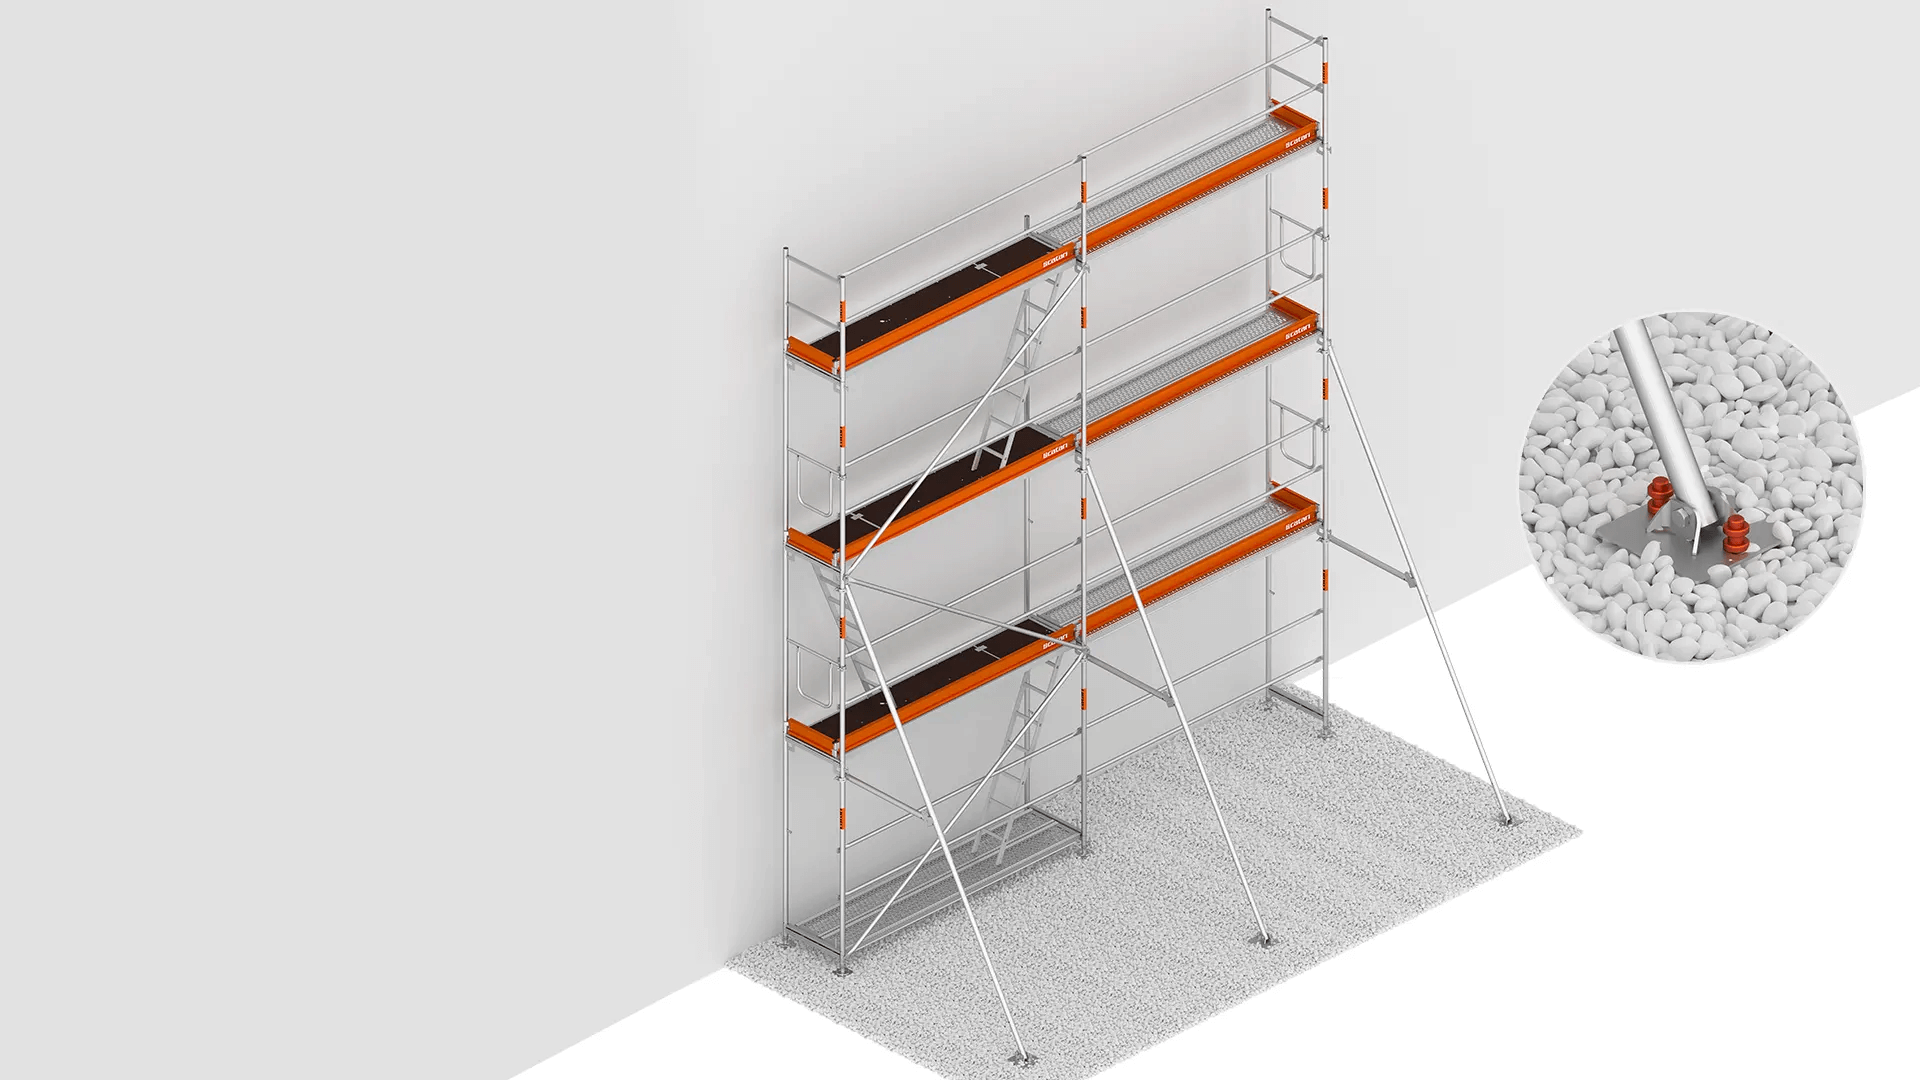 suspended scaffolding attachment